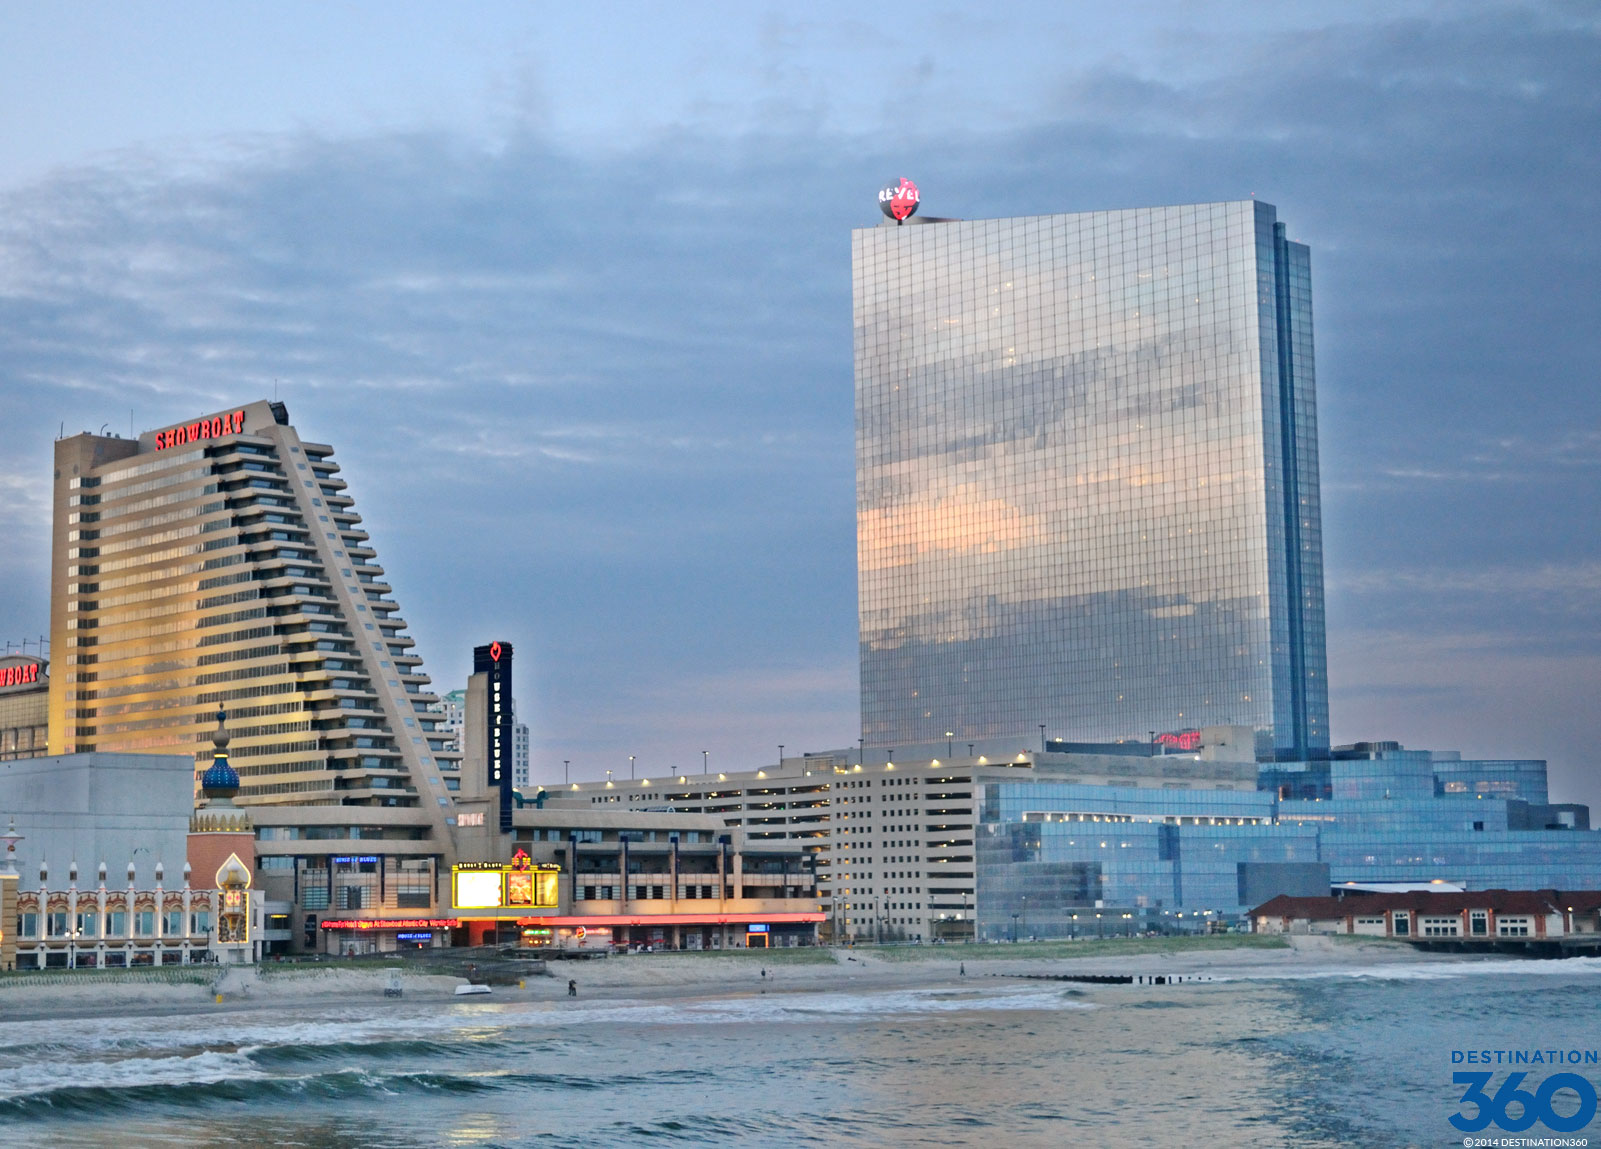 Find Atlantic City hotel deals and more. Find the latest Atlantic City hotel deals, vacation packages and discount offers that will take the gamble out of vacations to AC.